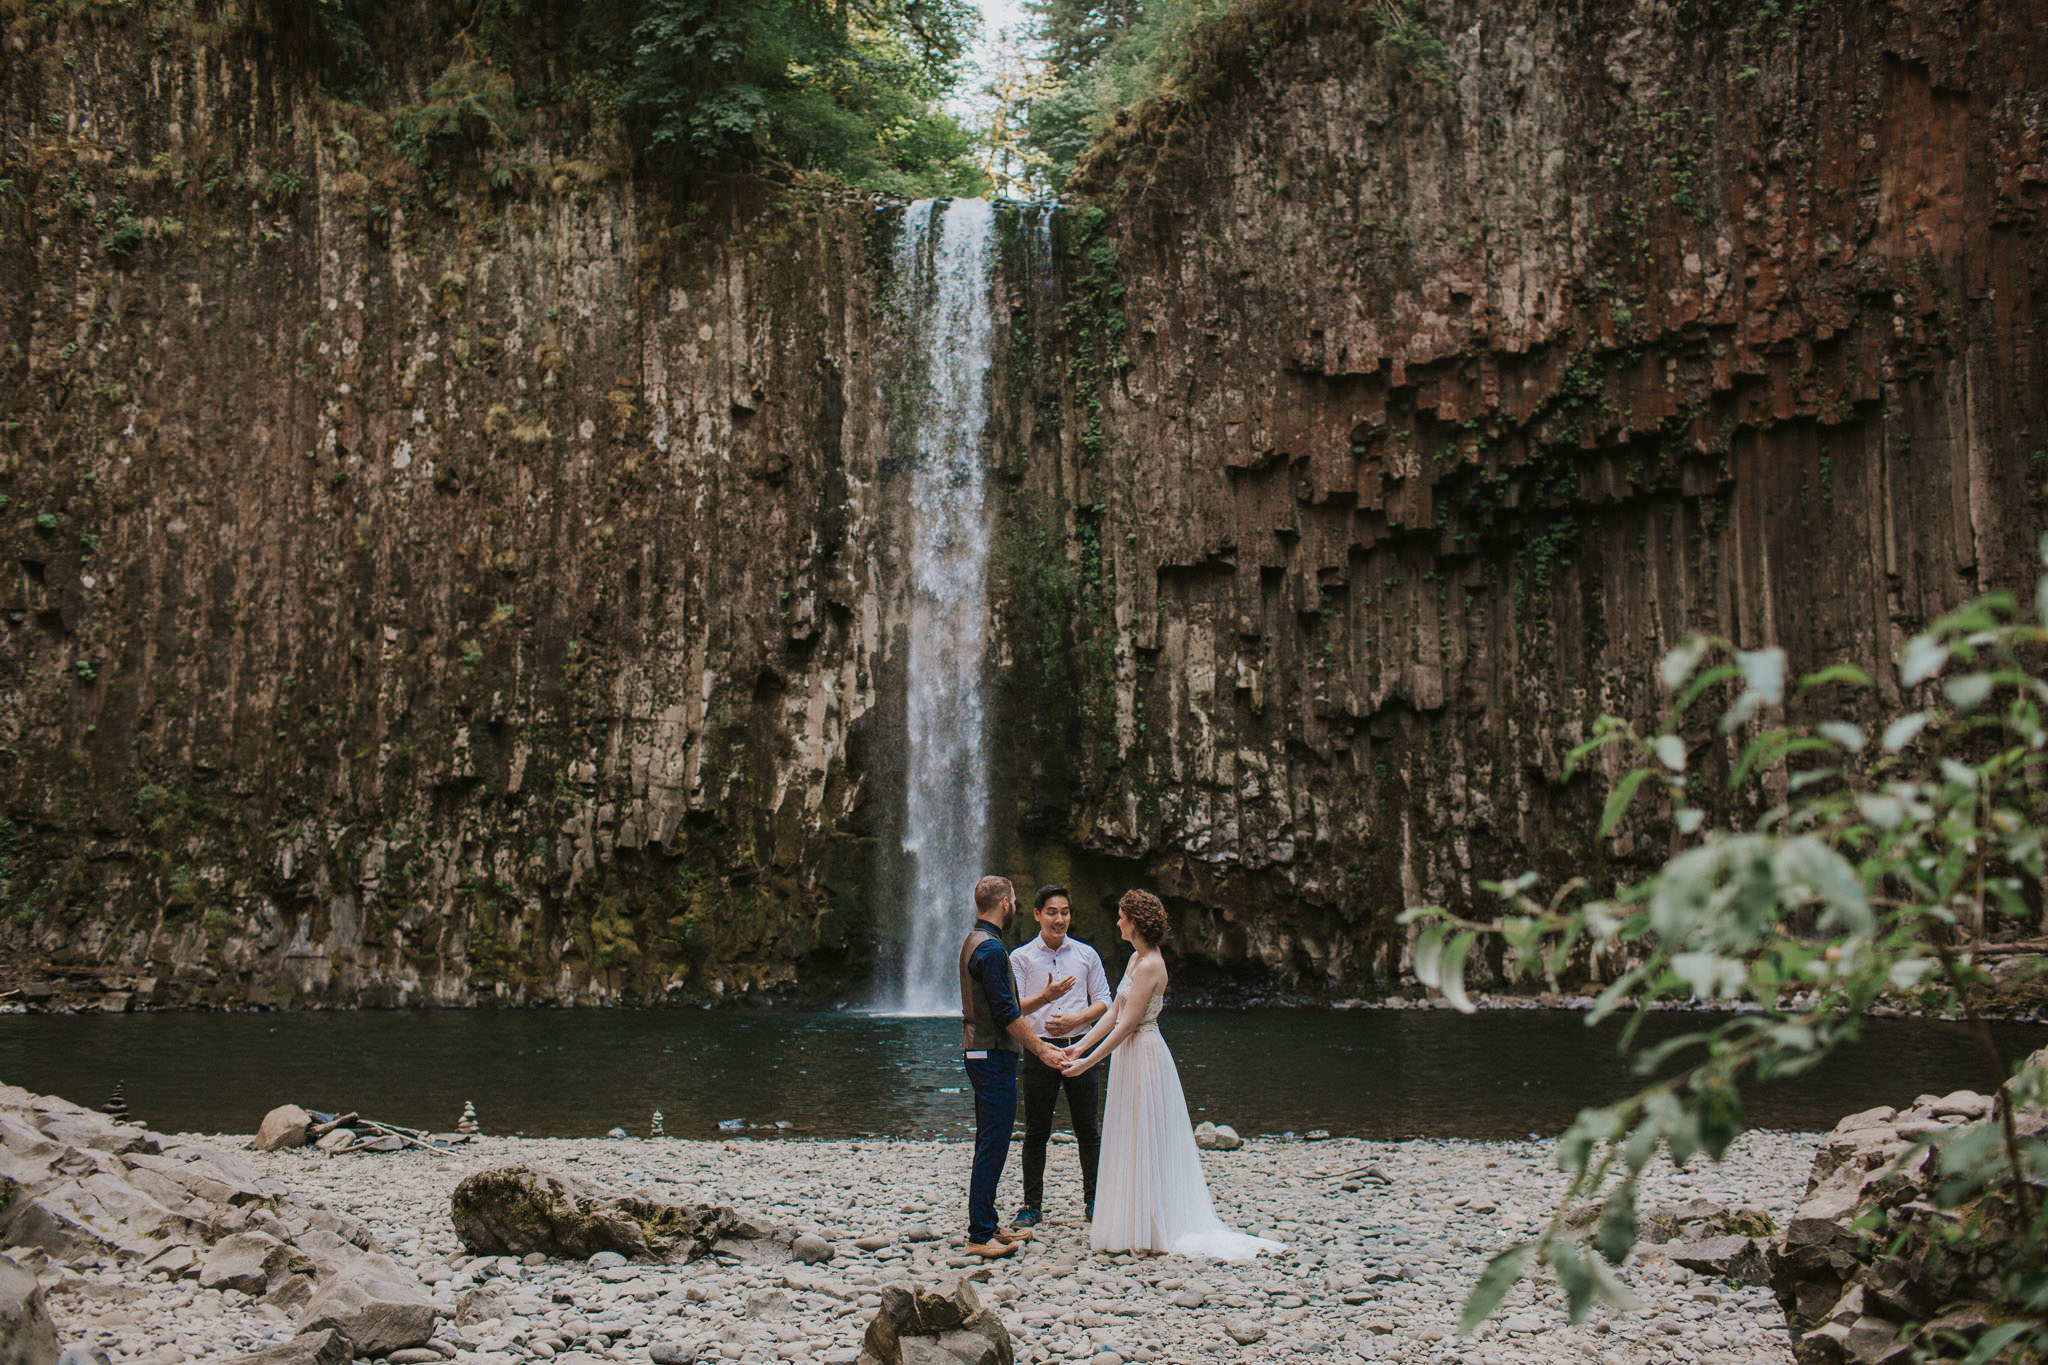 Adventure wedding at Abiqua Falls outside of Portland, Oregon. An elopement in front of a waterfall.